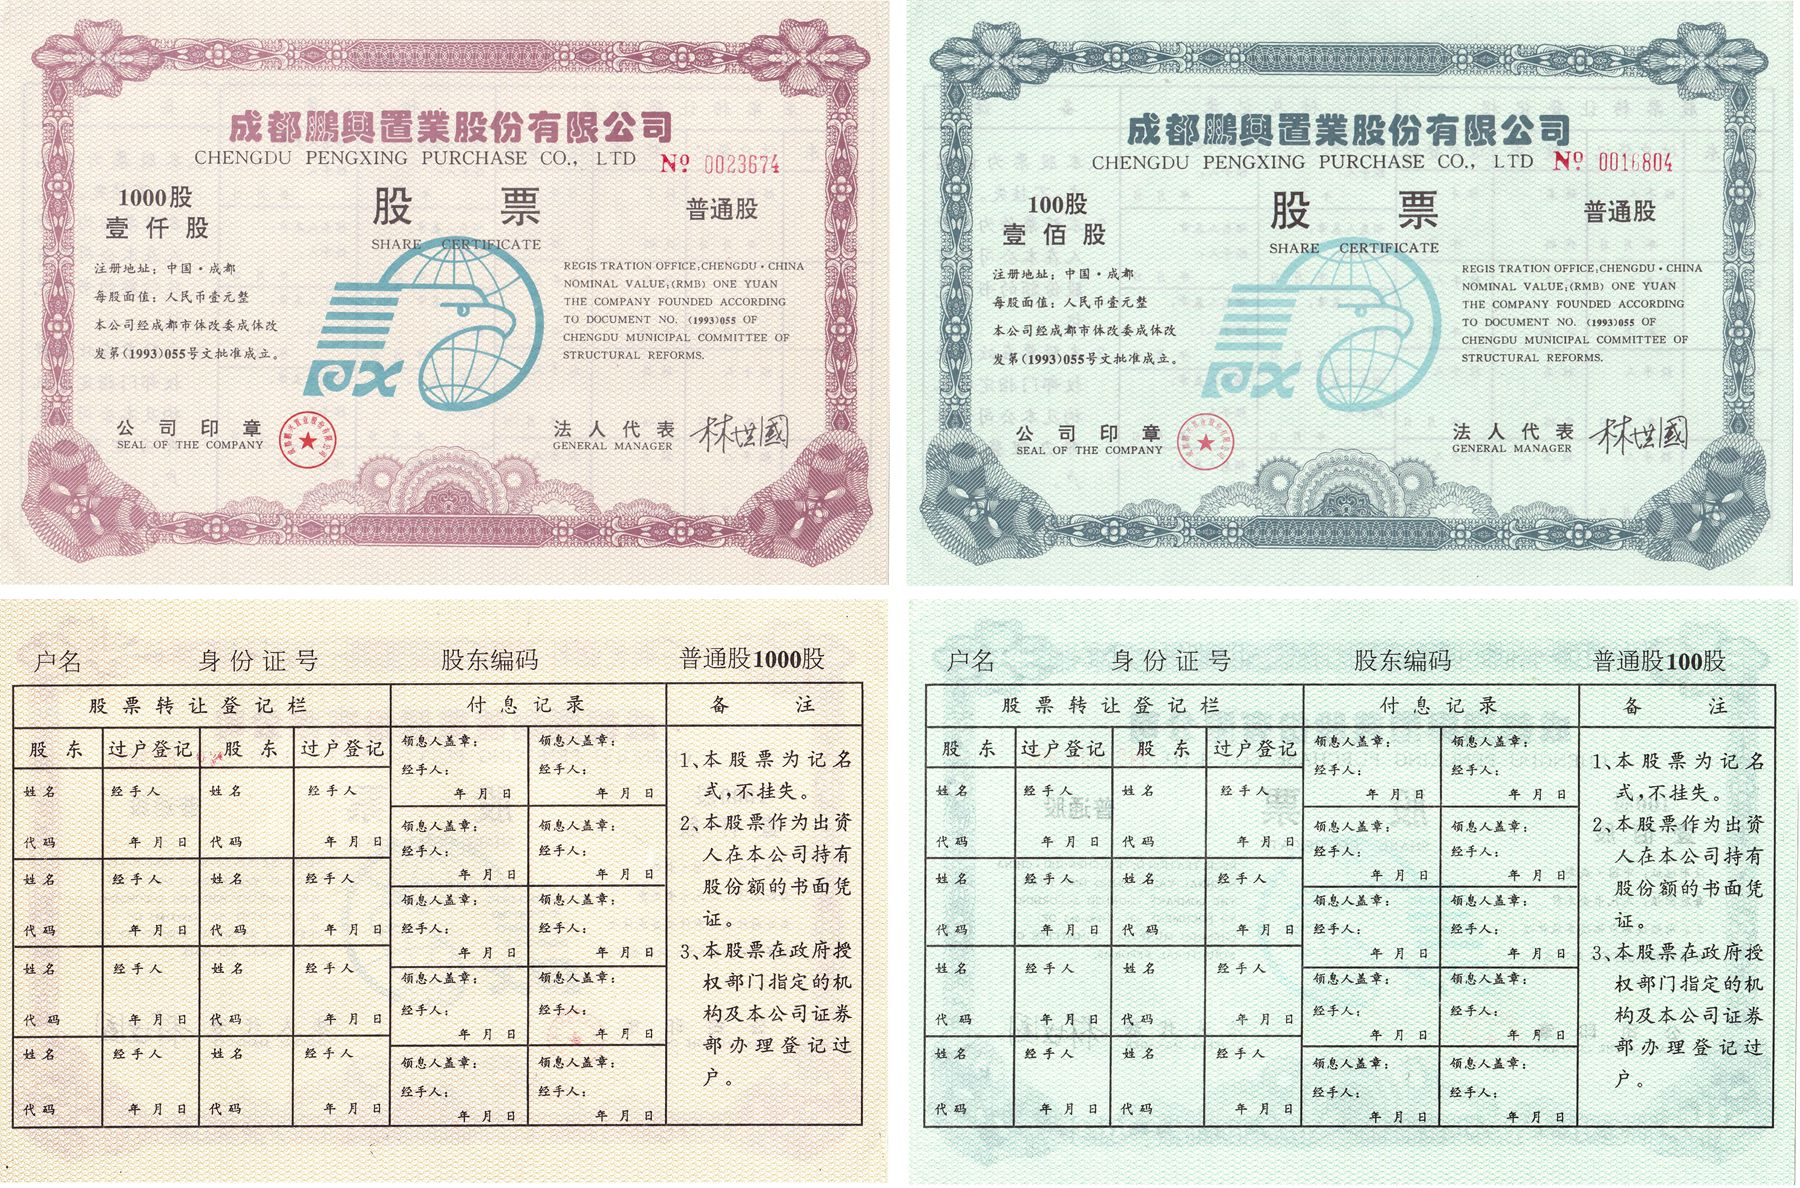 S3278, Chengdu Pengxing Realty Co., Stock Certificate 2 Pcs, China 1993